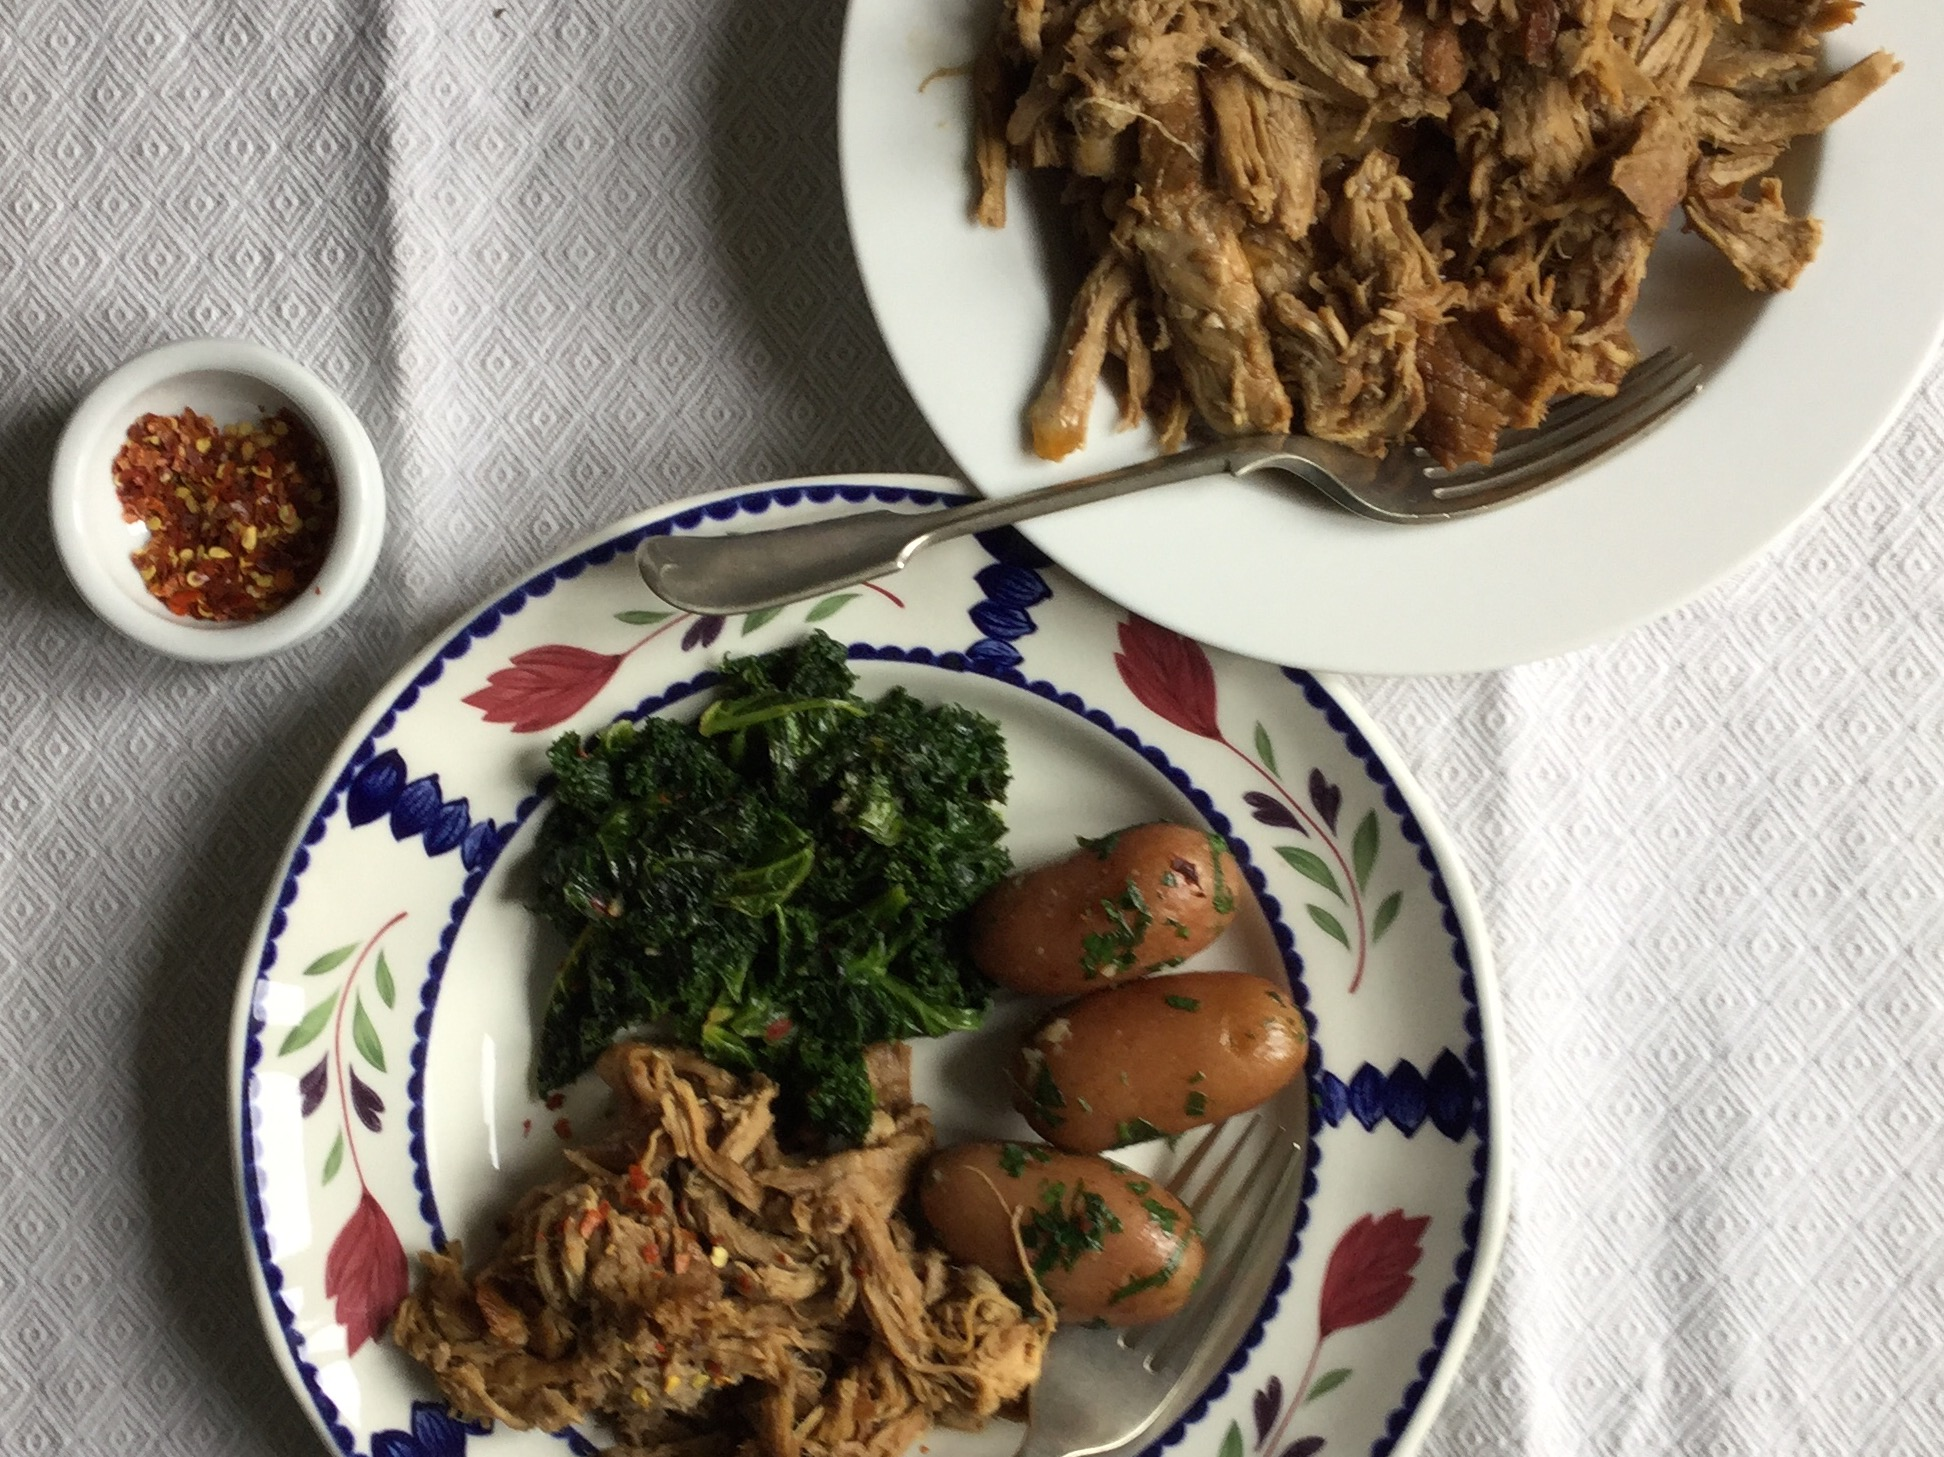 cider-pork-plate-and-serving-dish